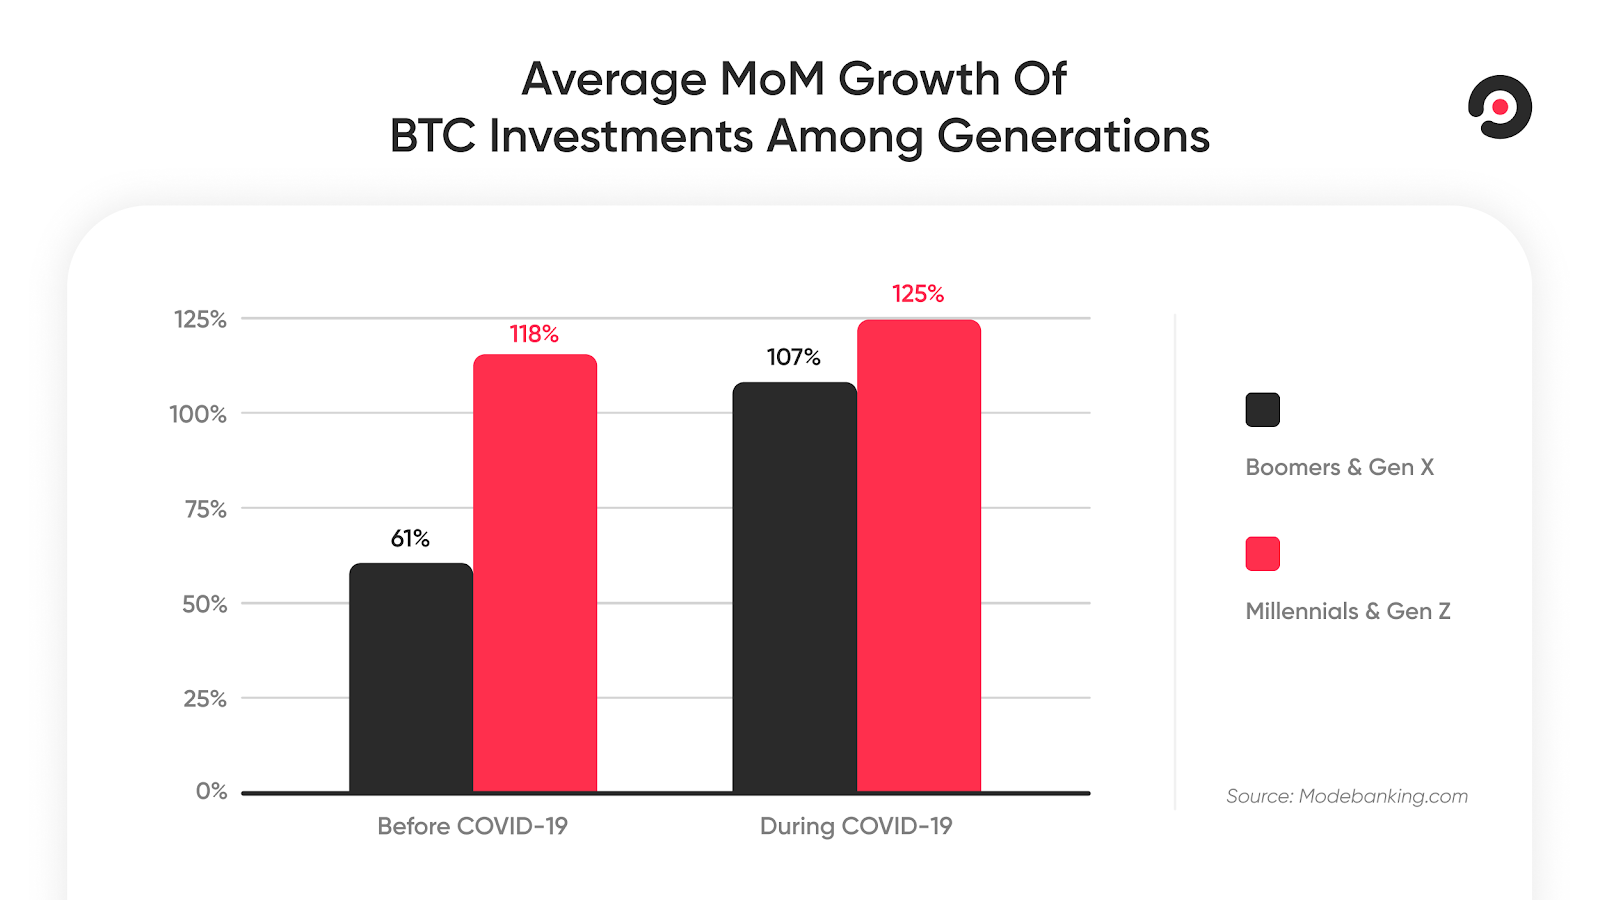 The investment gap between generations is closing